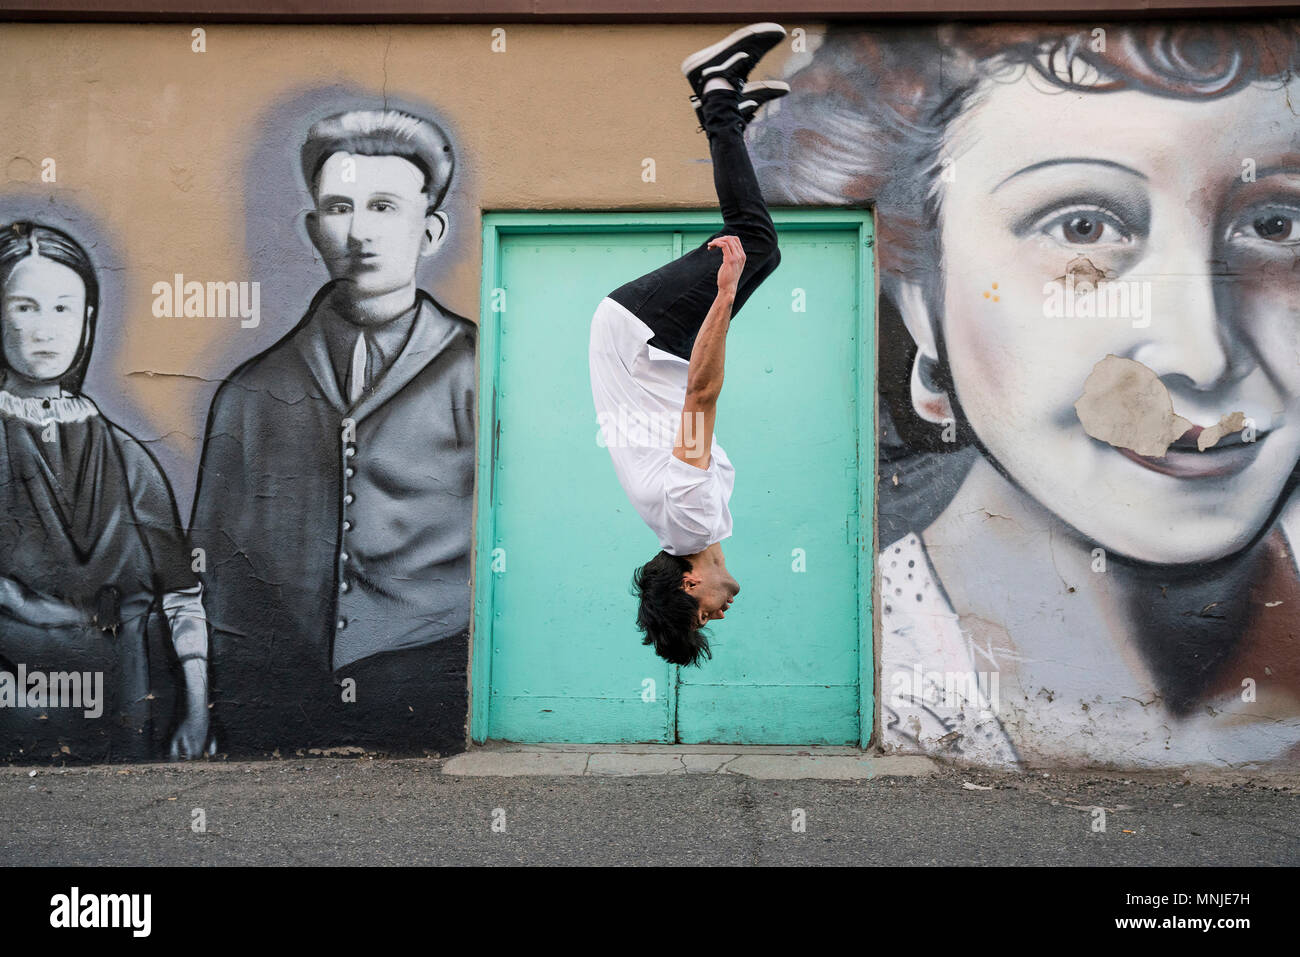 Young fit parkour athlete doing backflip in front of street art, Santa Fe Arts District, Denver, Colorado, USA - Stock Image